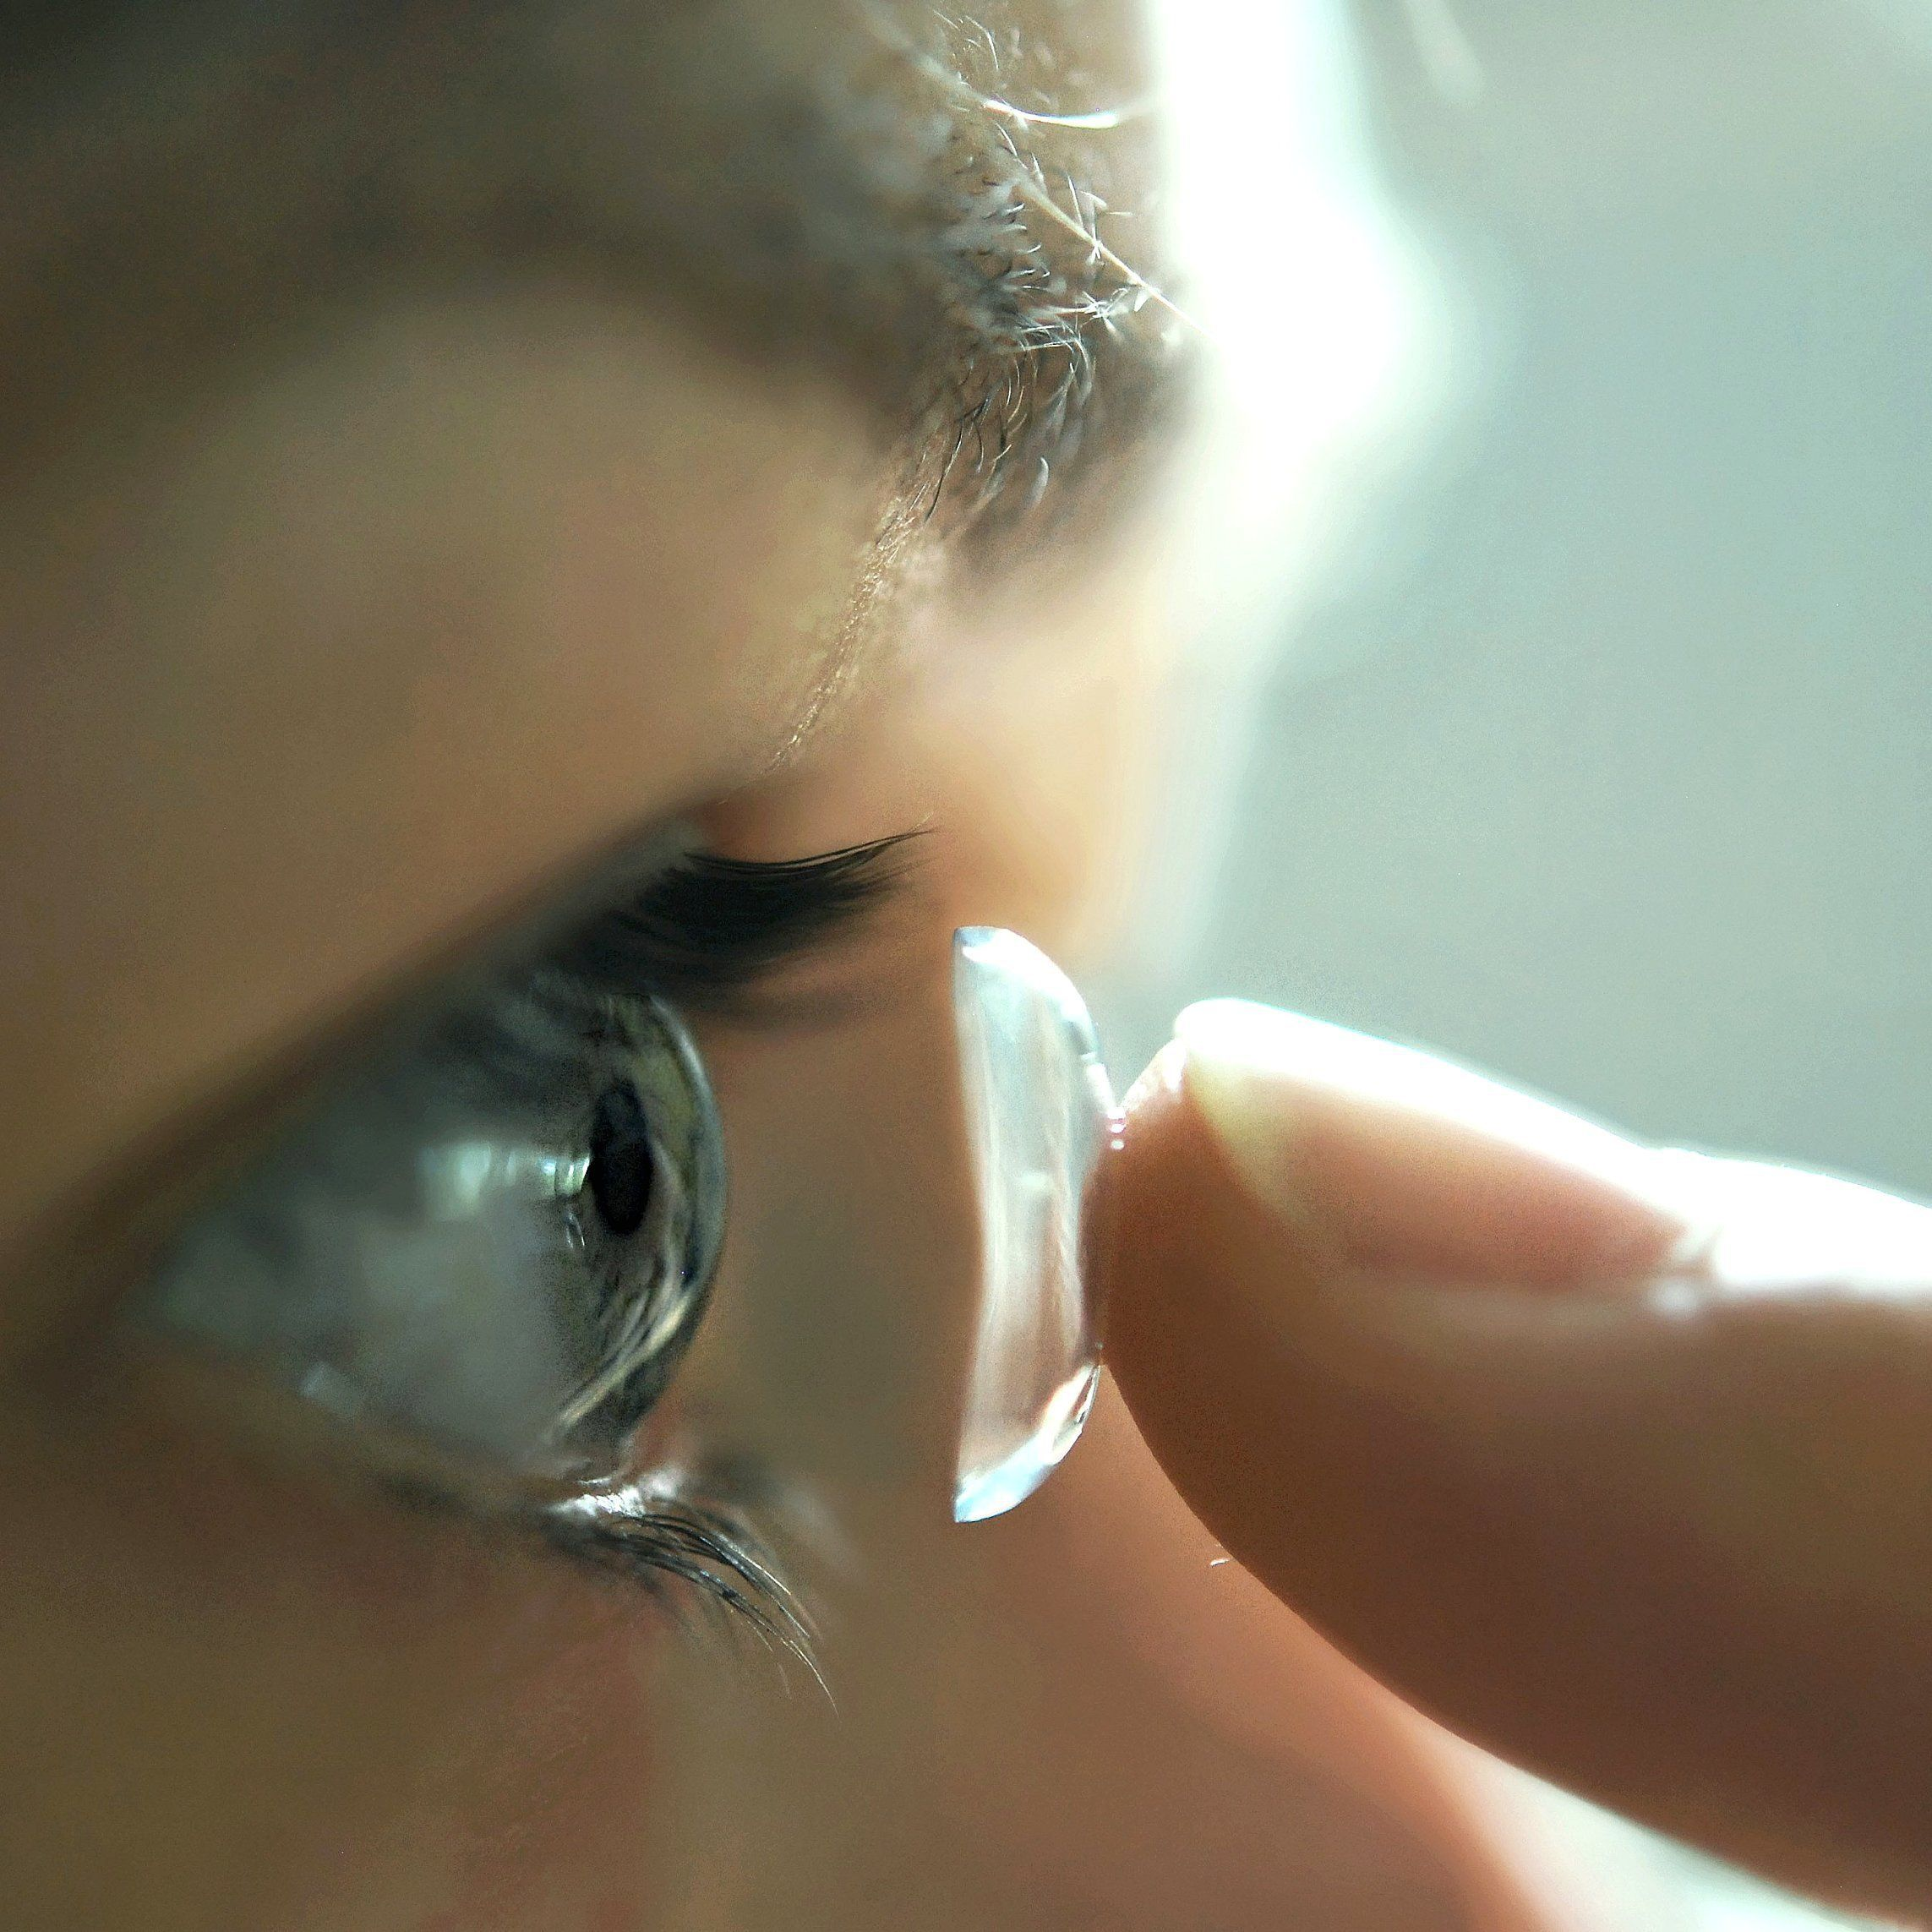 Close up of contact lens being put into eye.